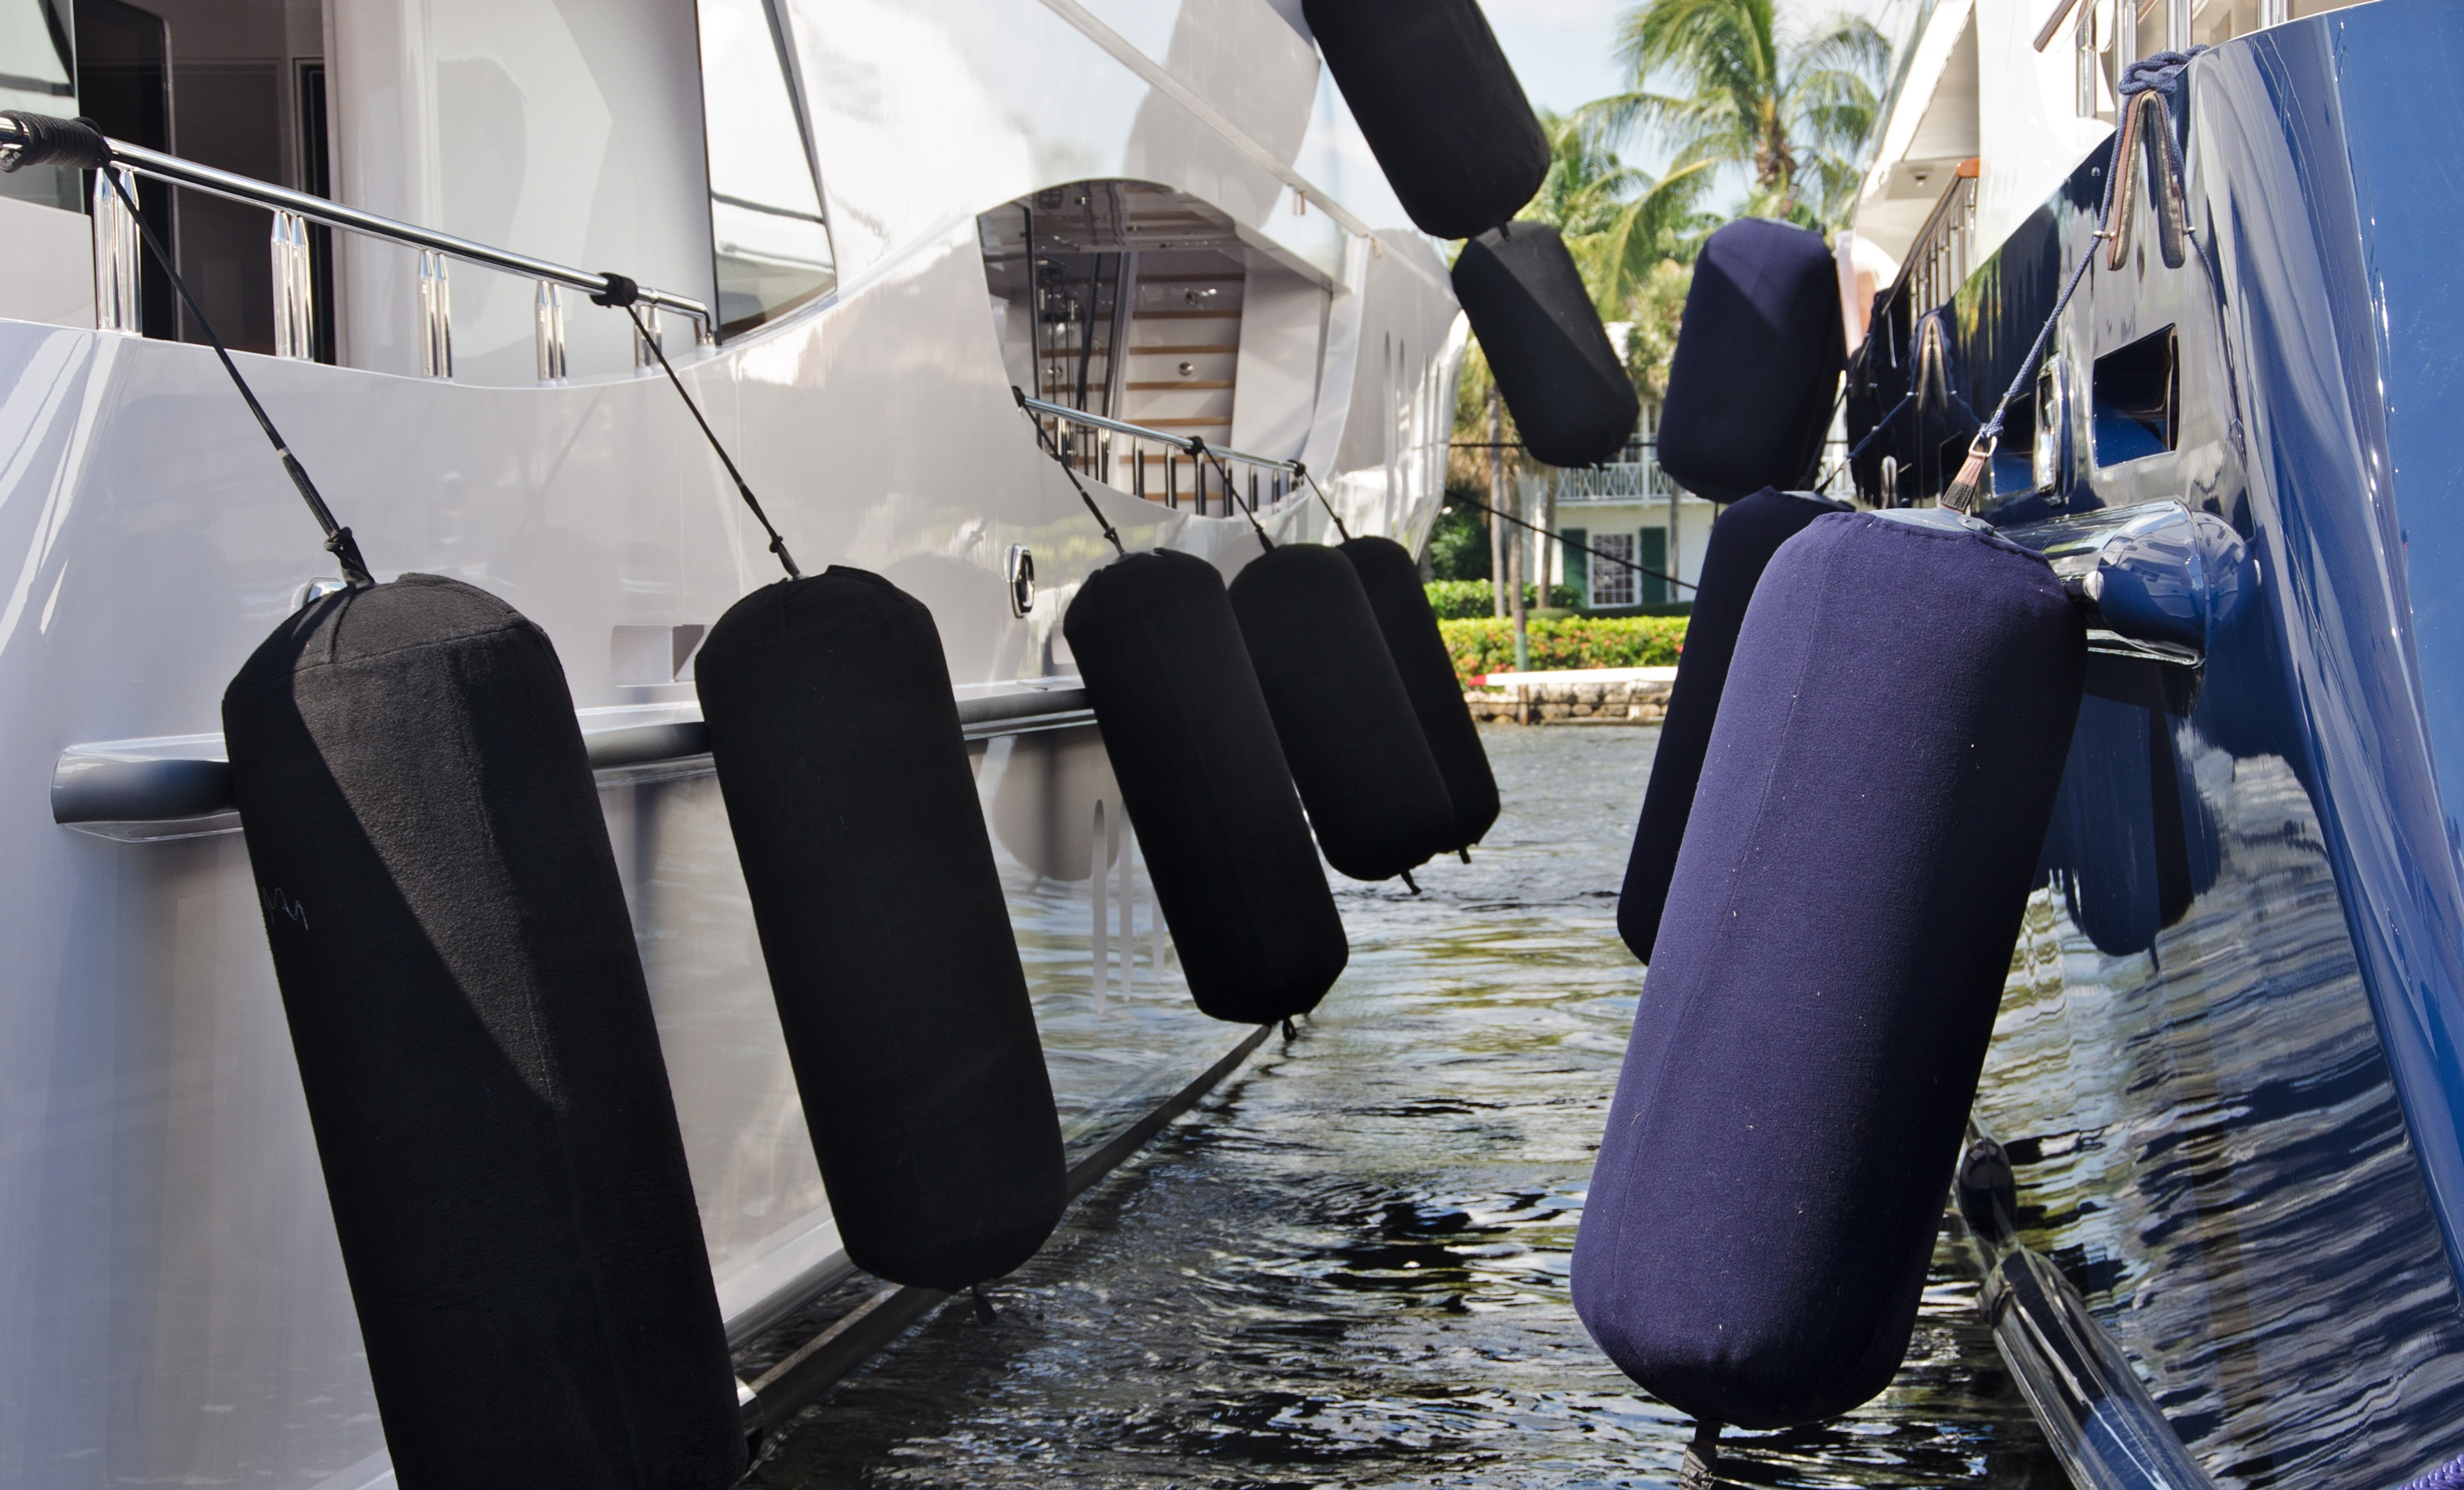 How to Dock a Boat: 7 Boat Handling Tips from a Former Dock Hand